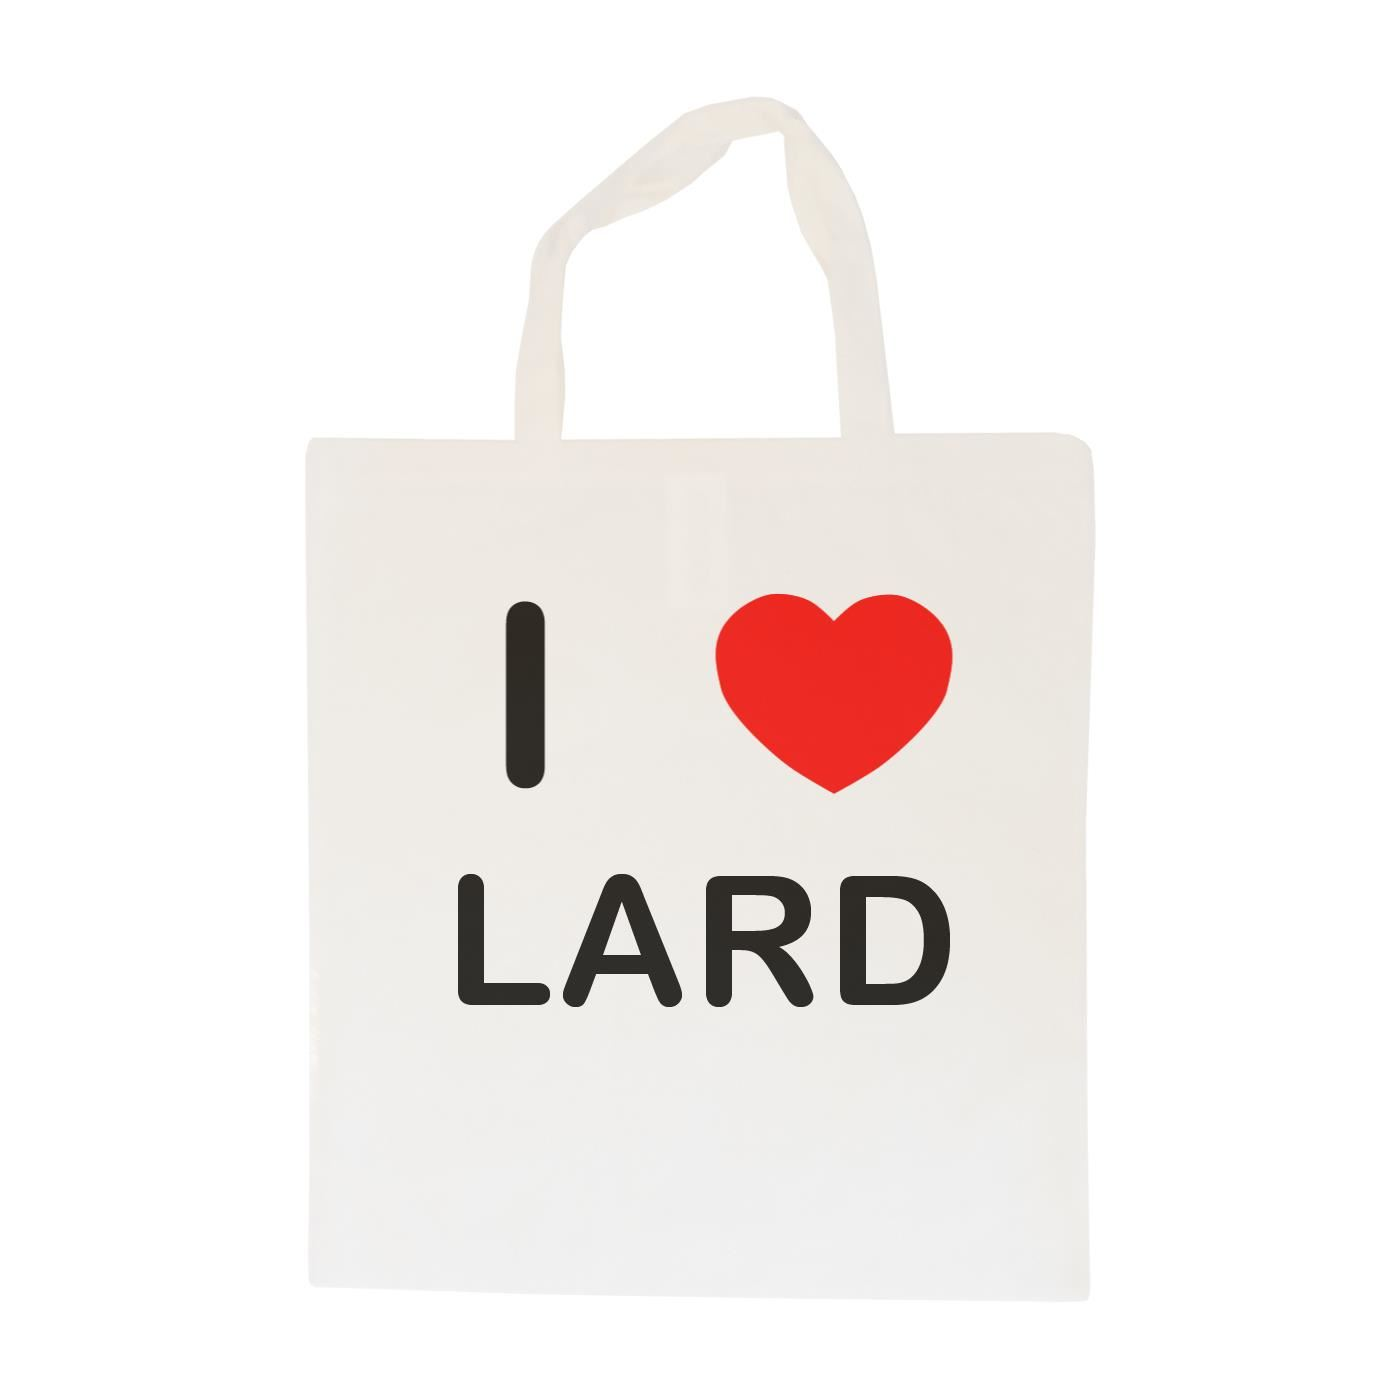 I Love Lard - Cotton Bag | Size choice Tote, Shopper or Sling